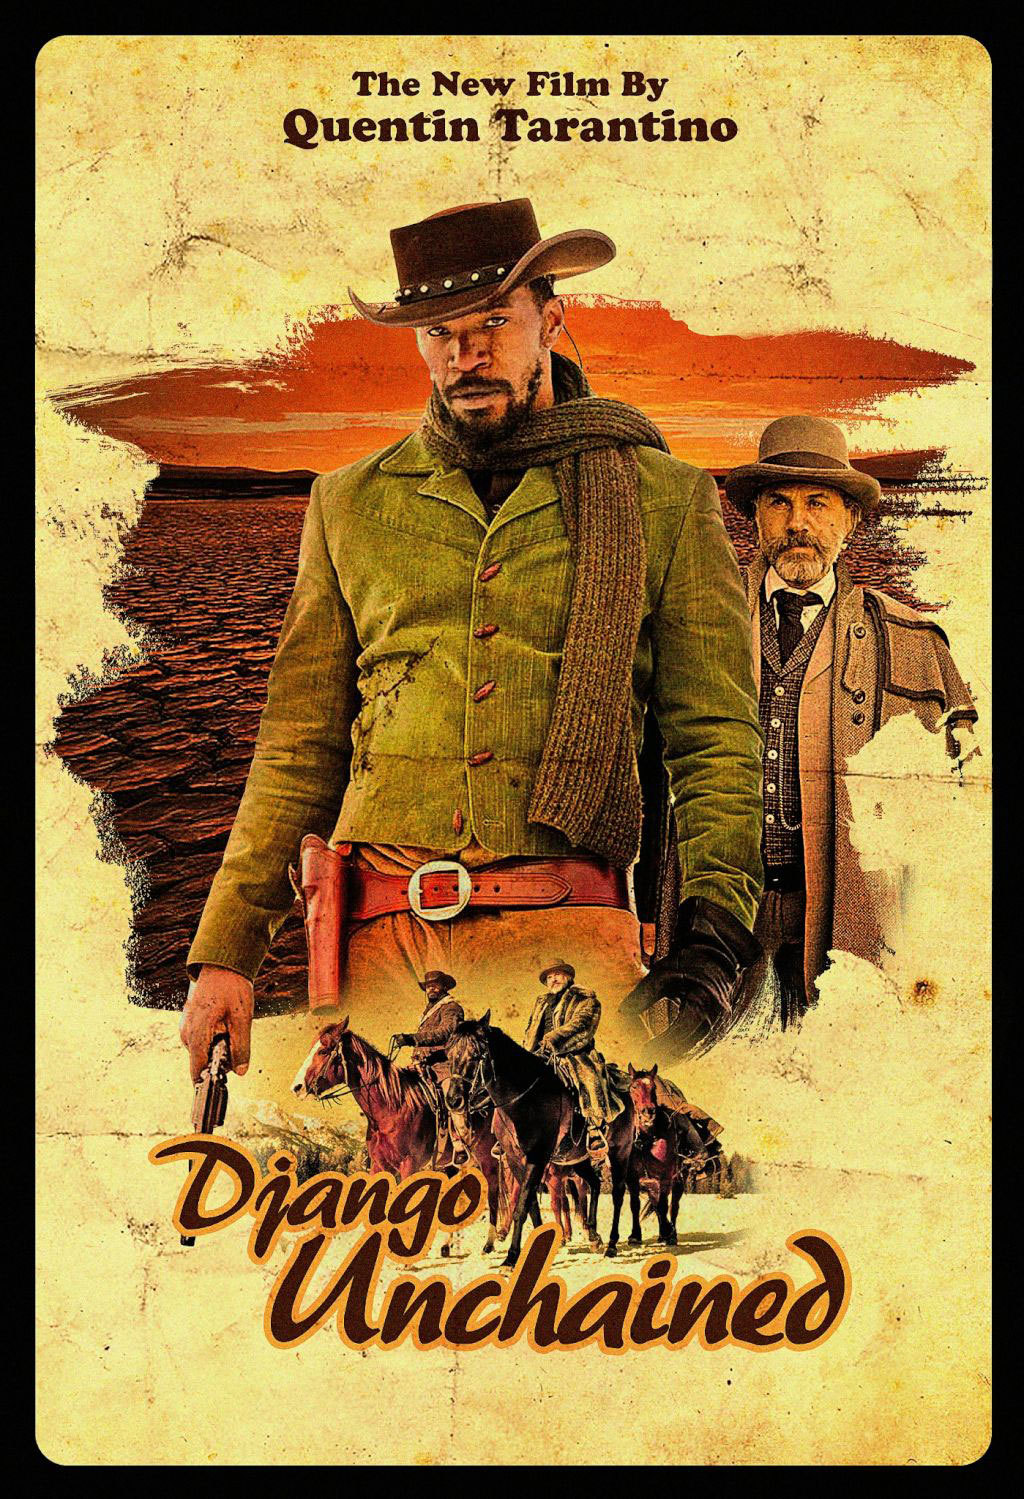 Django Unchained was fantastic. Didn't expect anything less. The mix of comedy, violence and shock was perfect. Another fantastic Tarantino film.